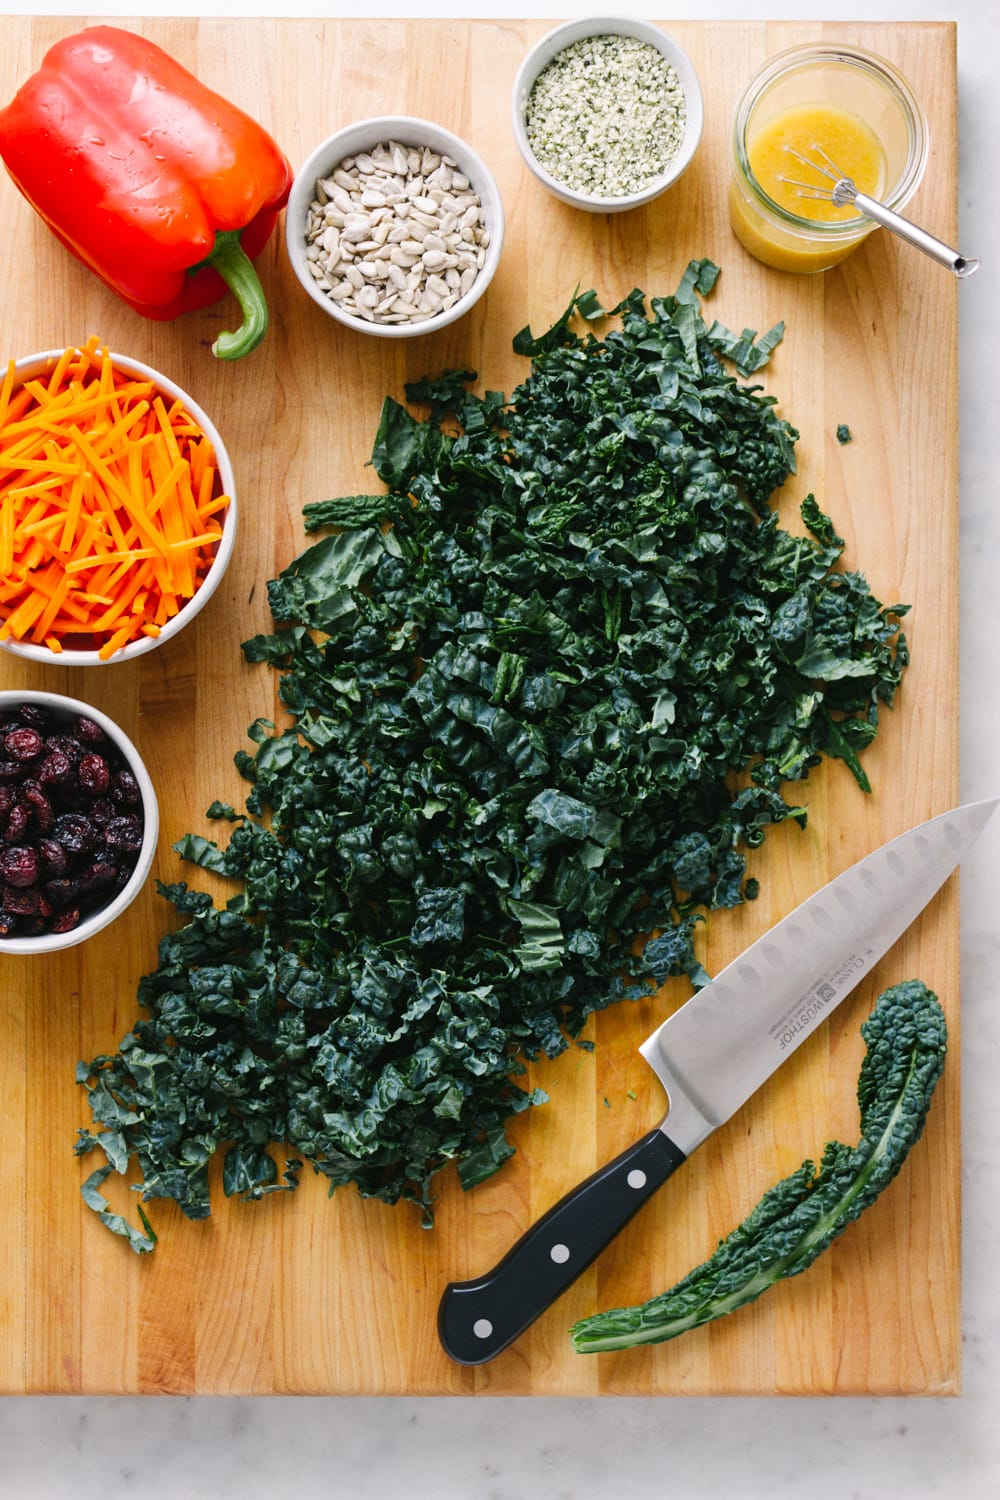 top down view of ingredients for kale salad with cranberries on a wooden cutting board.